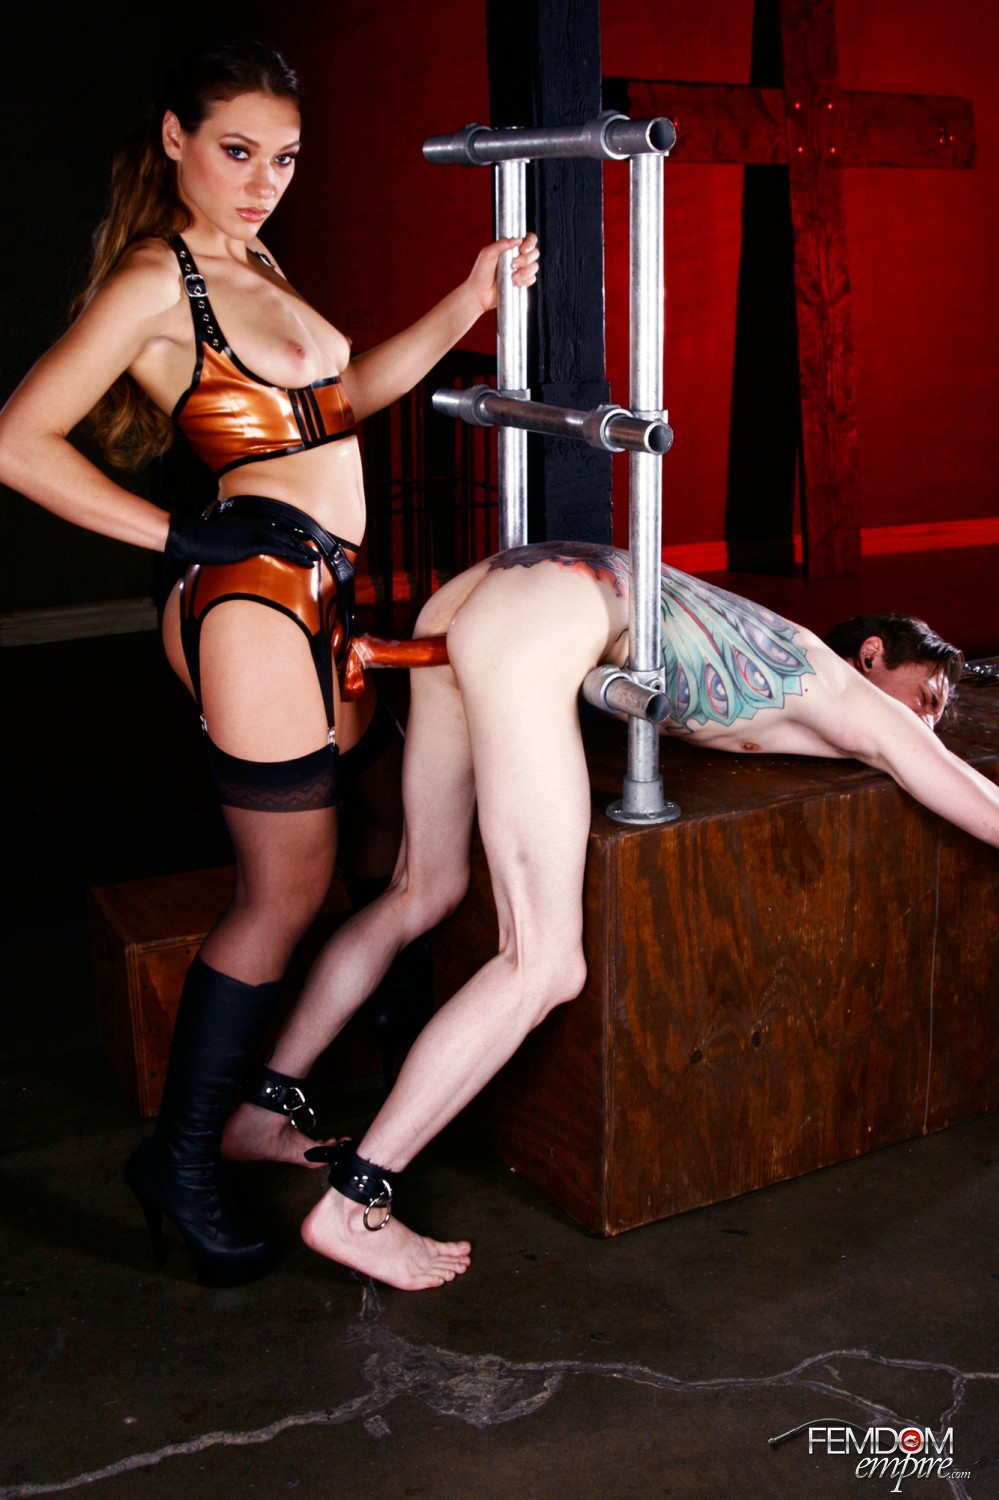 Mistress Callie Calypso takes her marionette bitch's butt with her strap-on meatpipe.